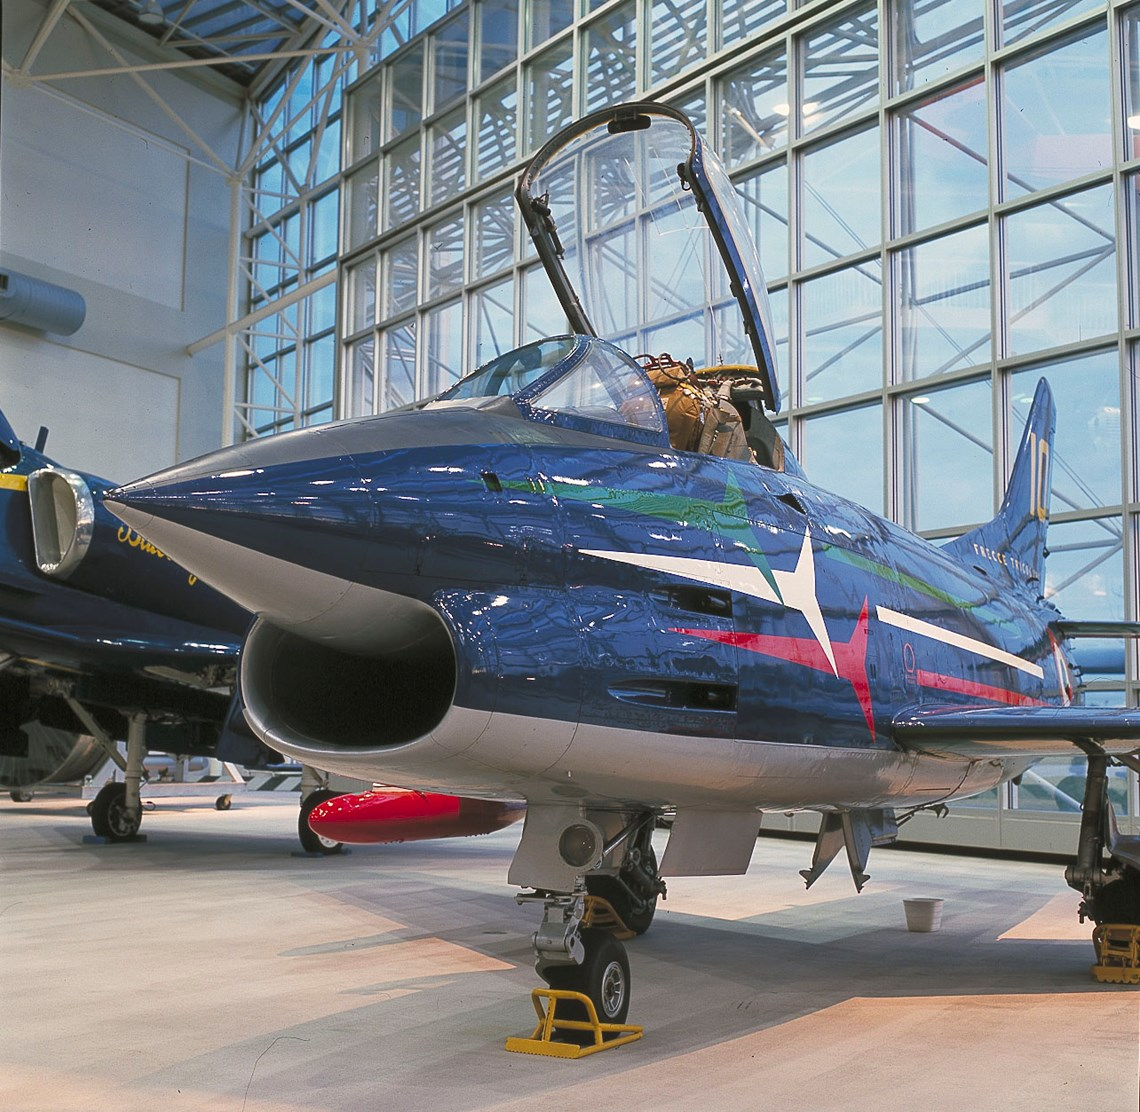 The Museum's Fiat G.91 Pan